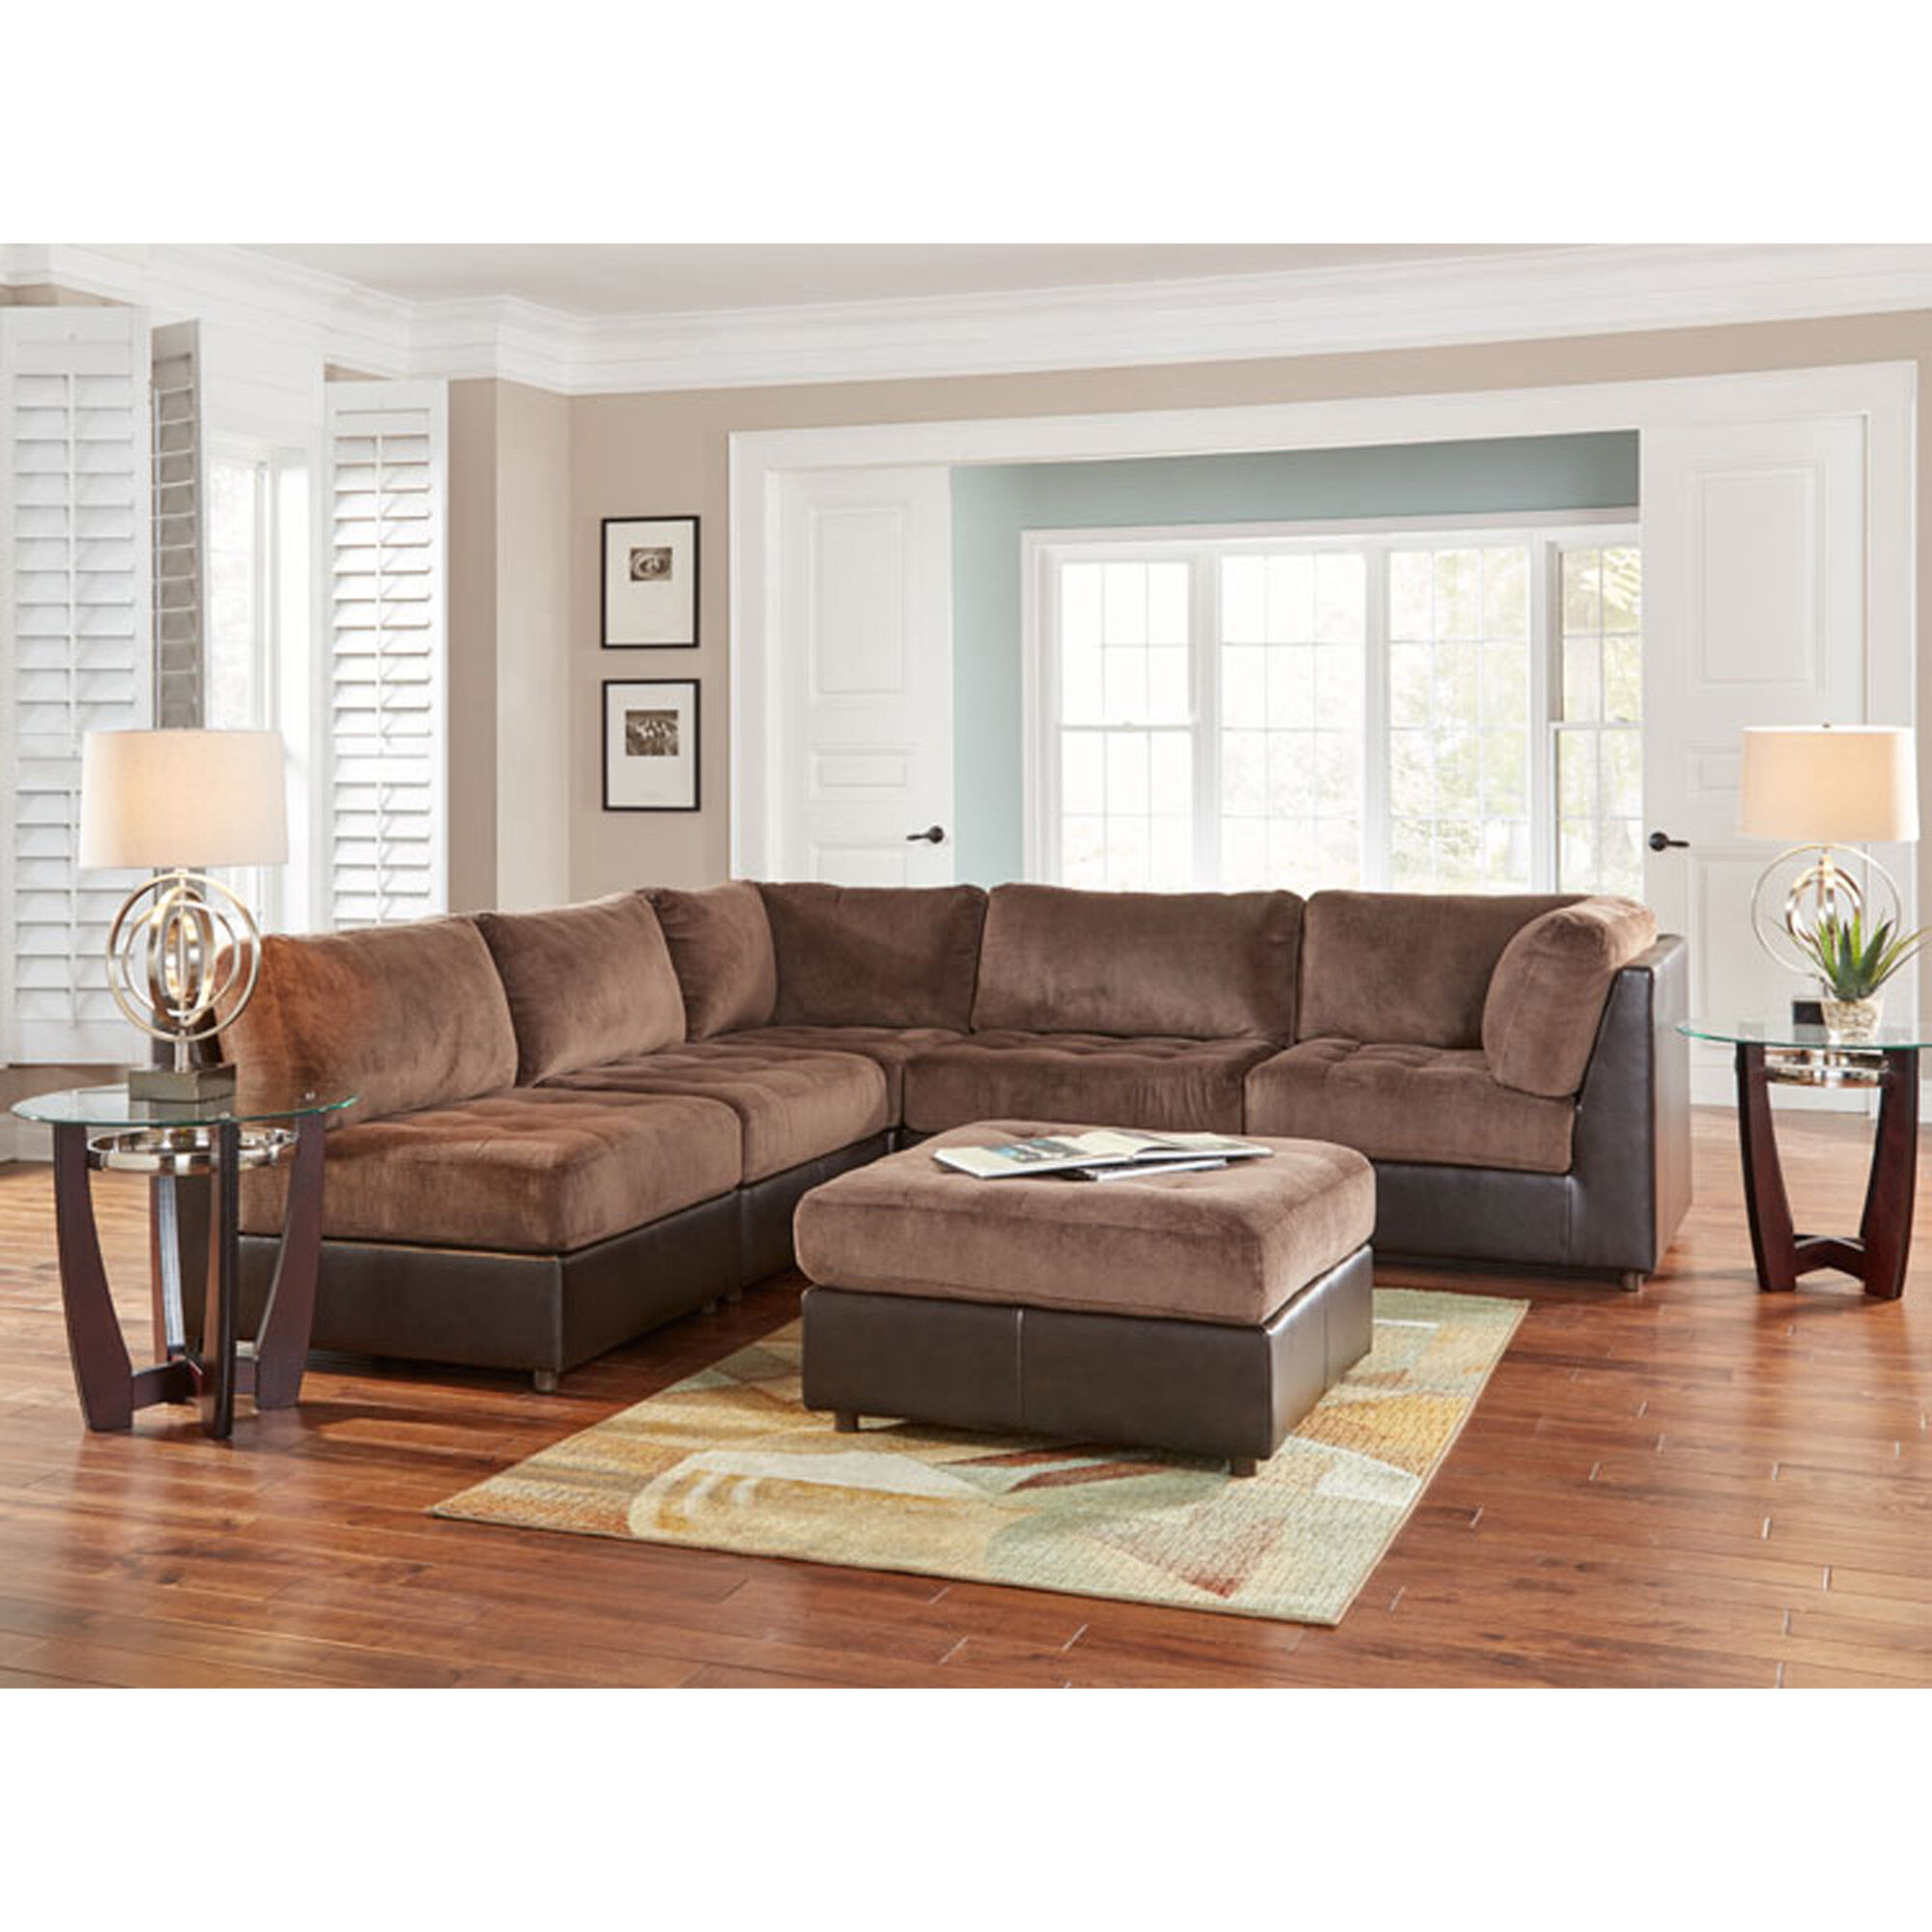 Lovely 11 Piece Hennessy Living Room Collection Good Ideas